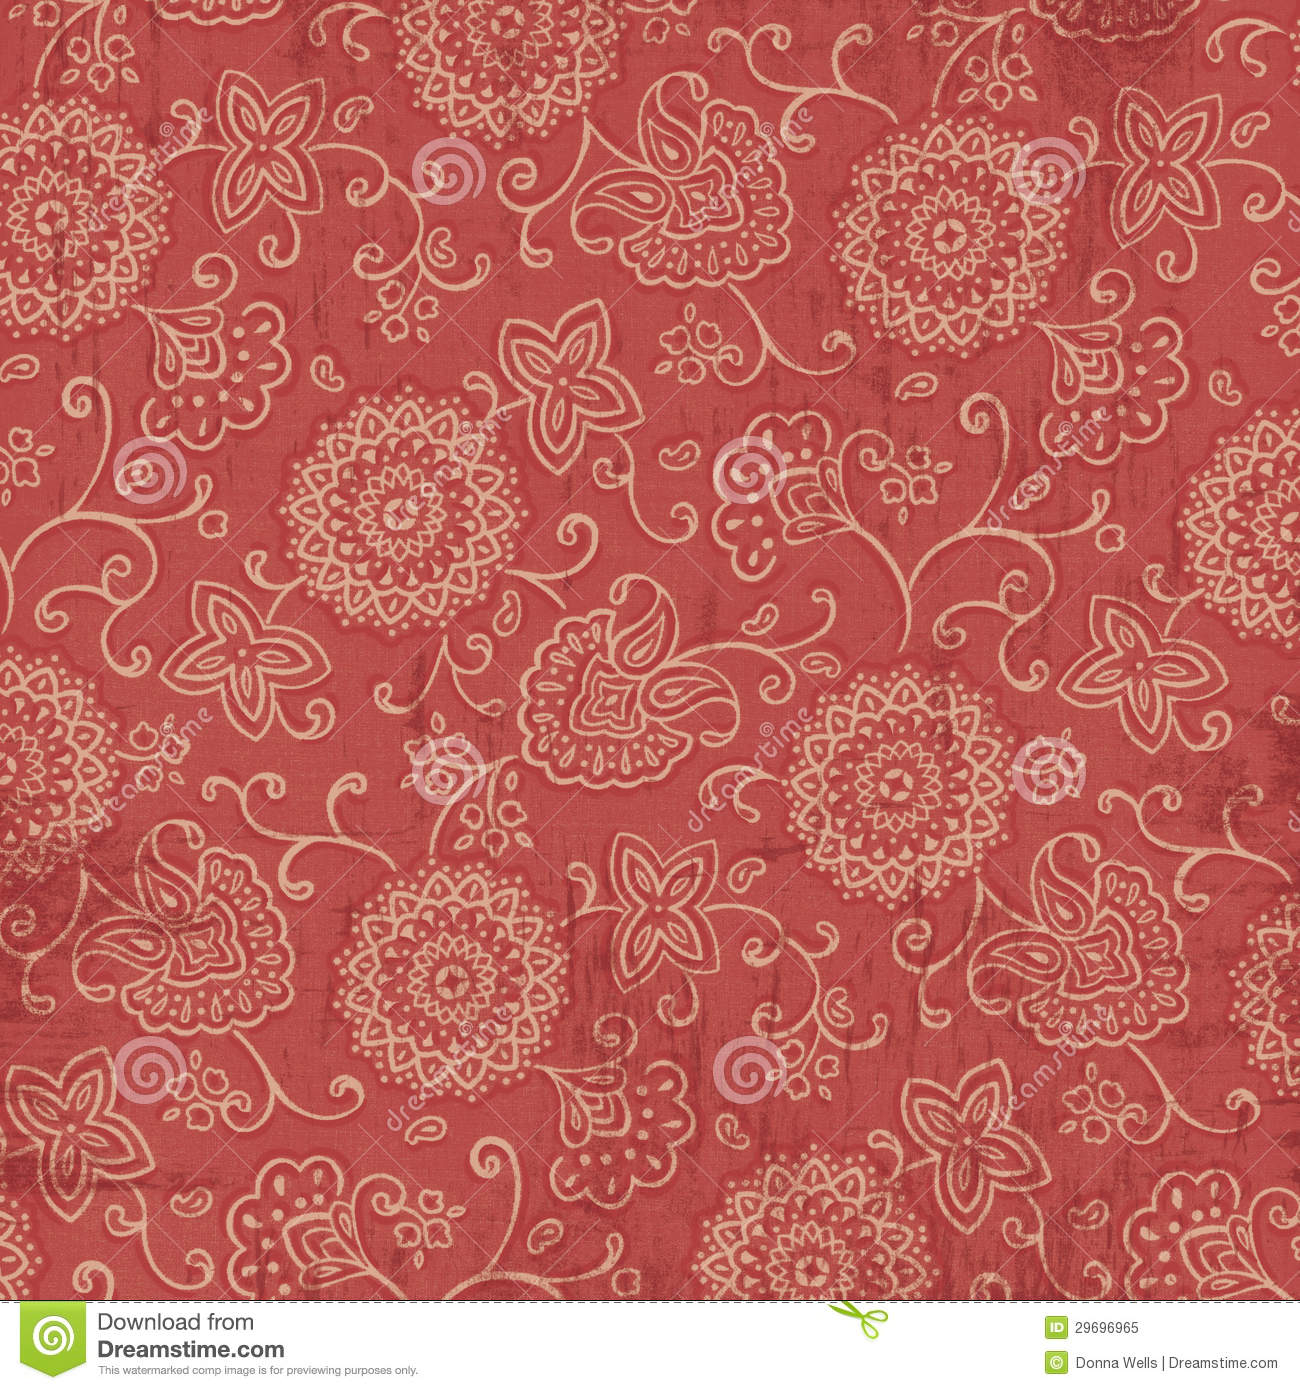 Cute Word Wallpaper Red And Cream Bandana Fabric Background Stock Illustration